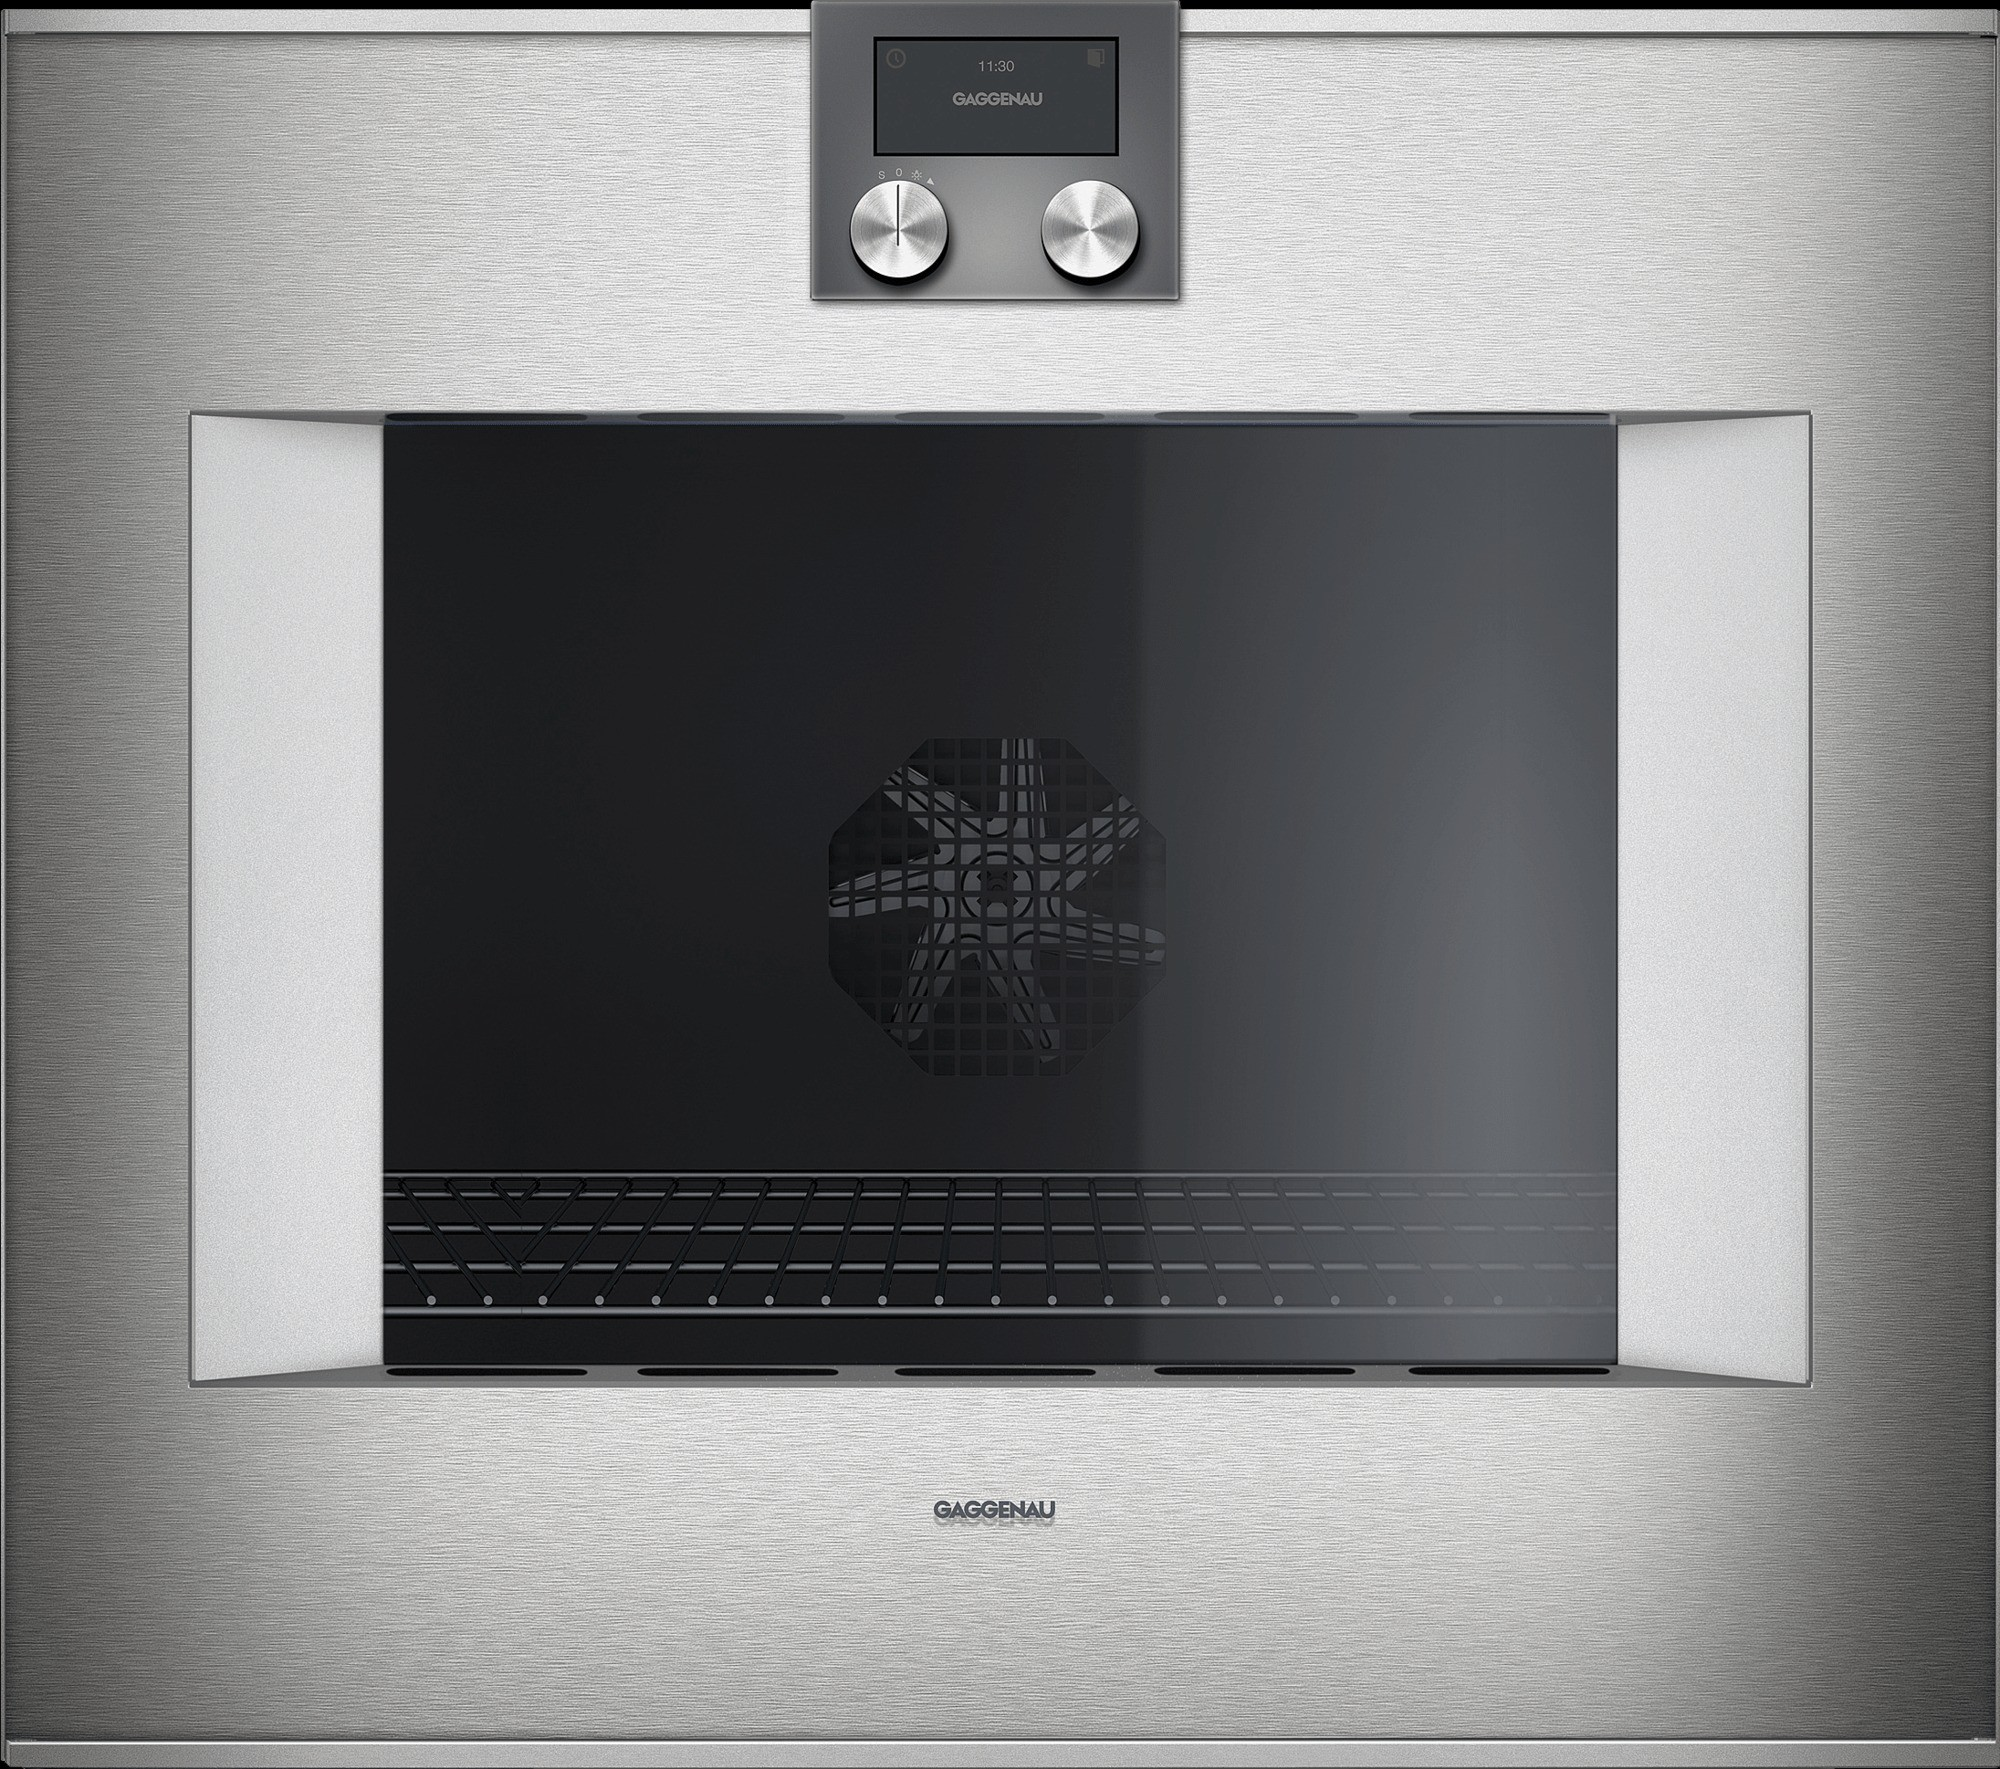 Gaggenau Bo480613 30 Inch Smart Electric Wall Oven With Home Connect Wifi Handleless Door Automatic Door Pyrolytic Self Cleaning Tft Touch Display Convection Oven Core Temperature Probe Halogen Lighting And Universal Heating